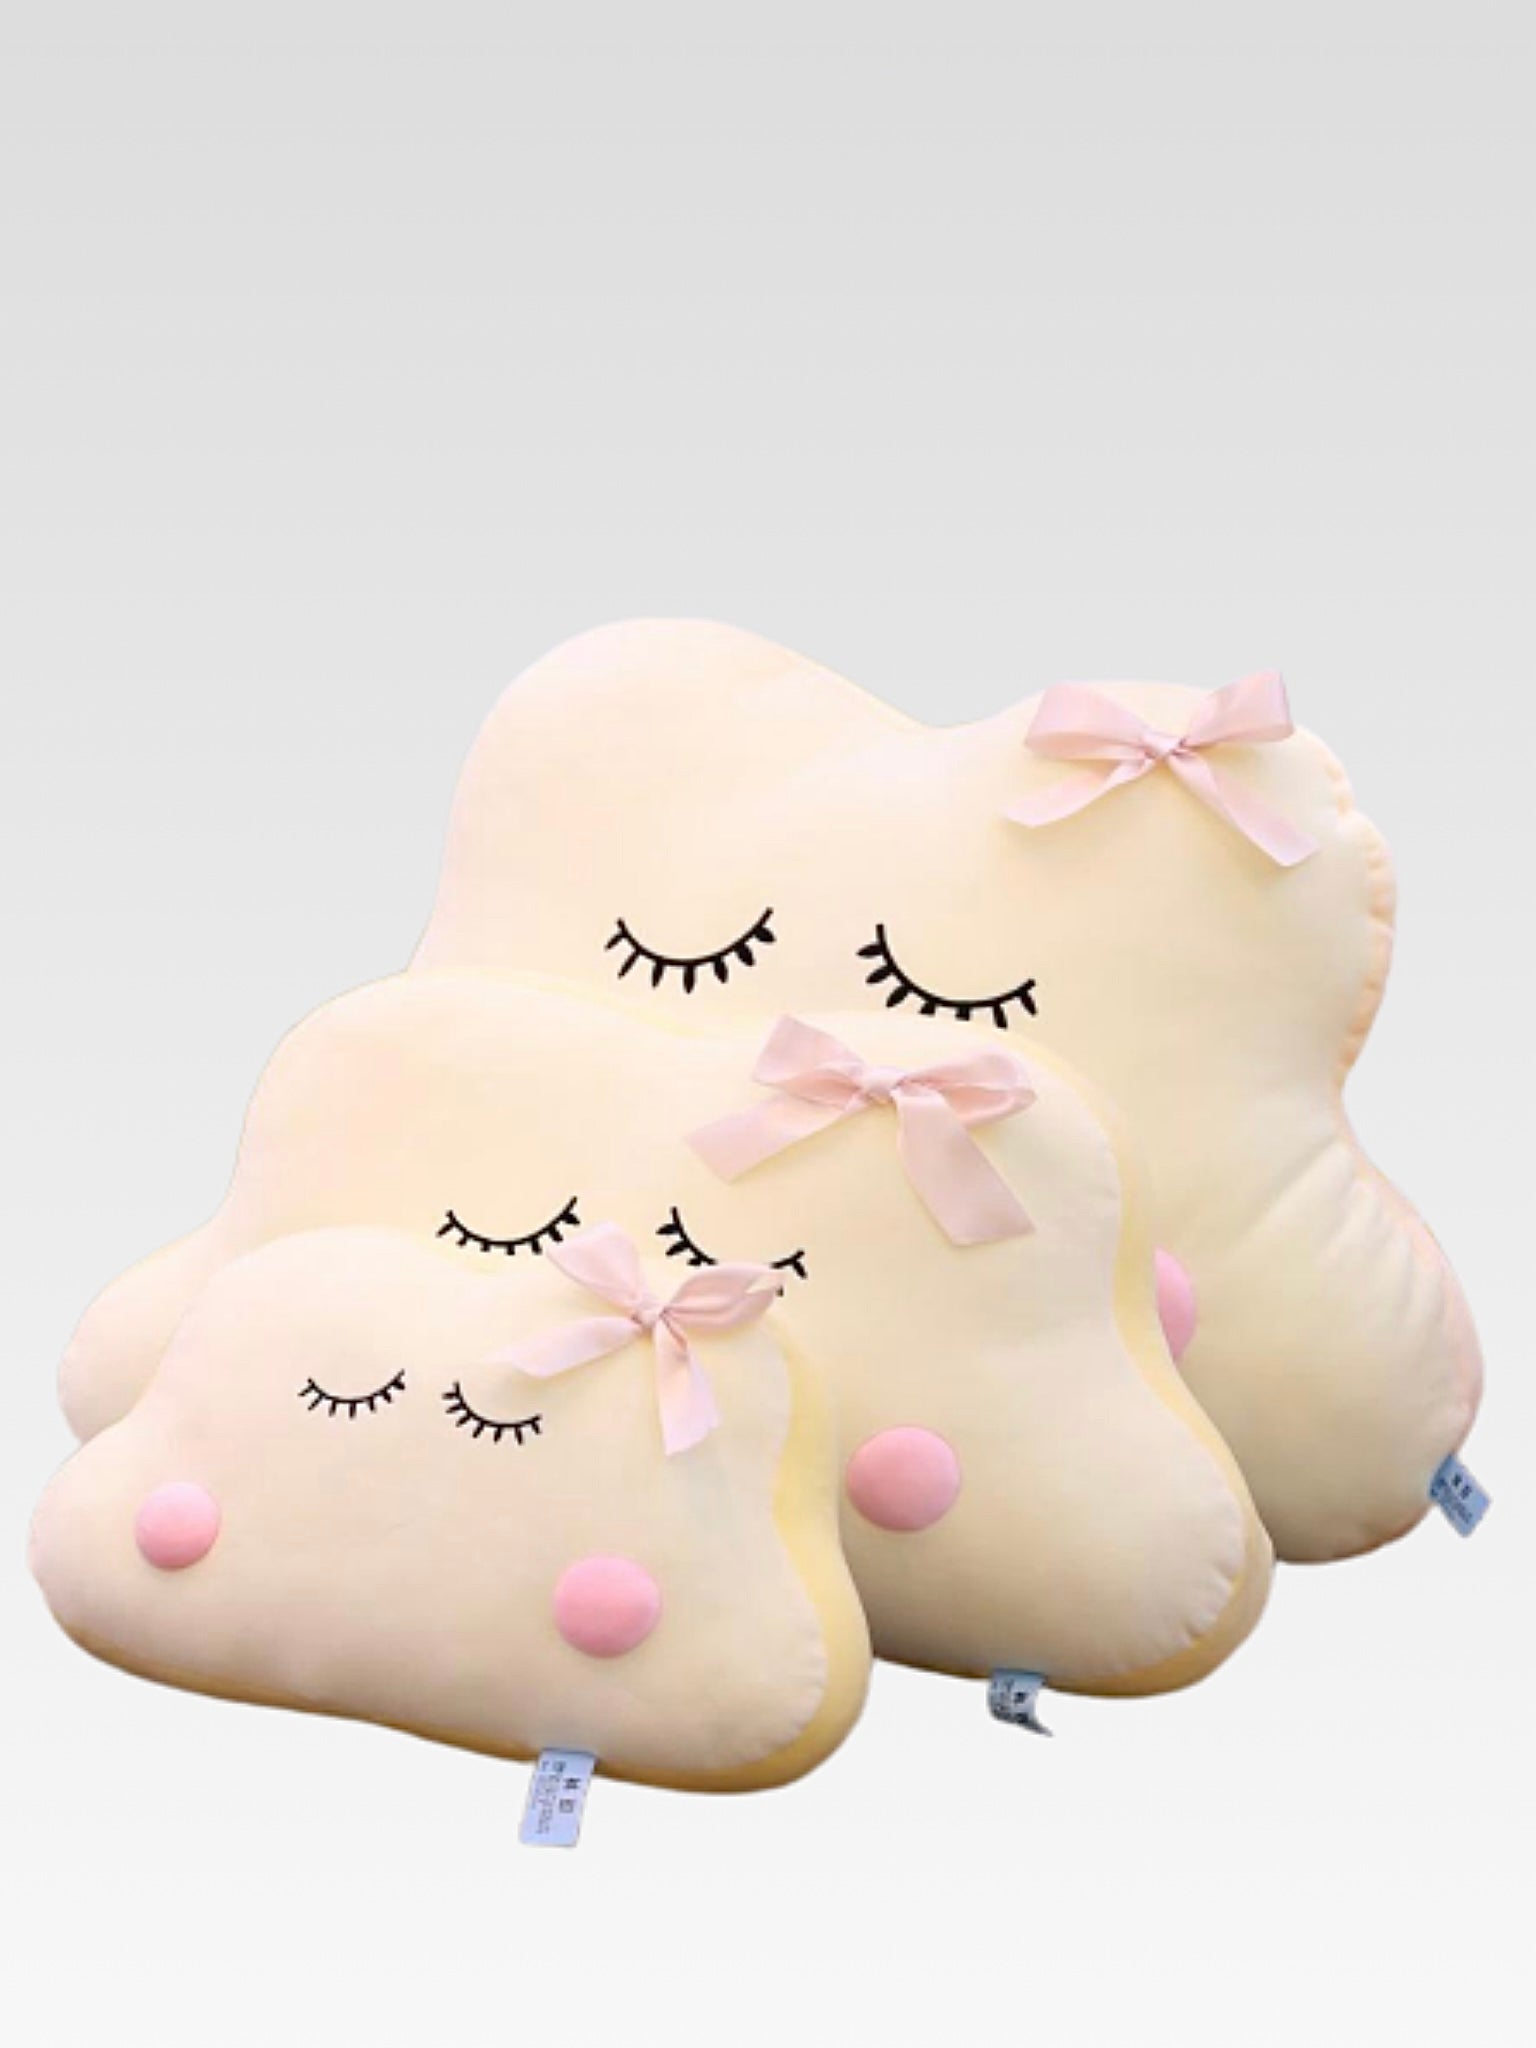 Anime Cloud Plush Doll Pillow Cushion Trend